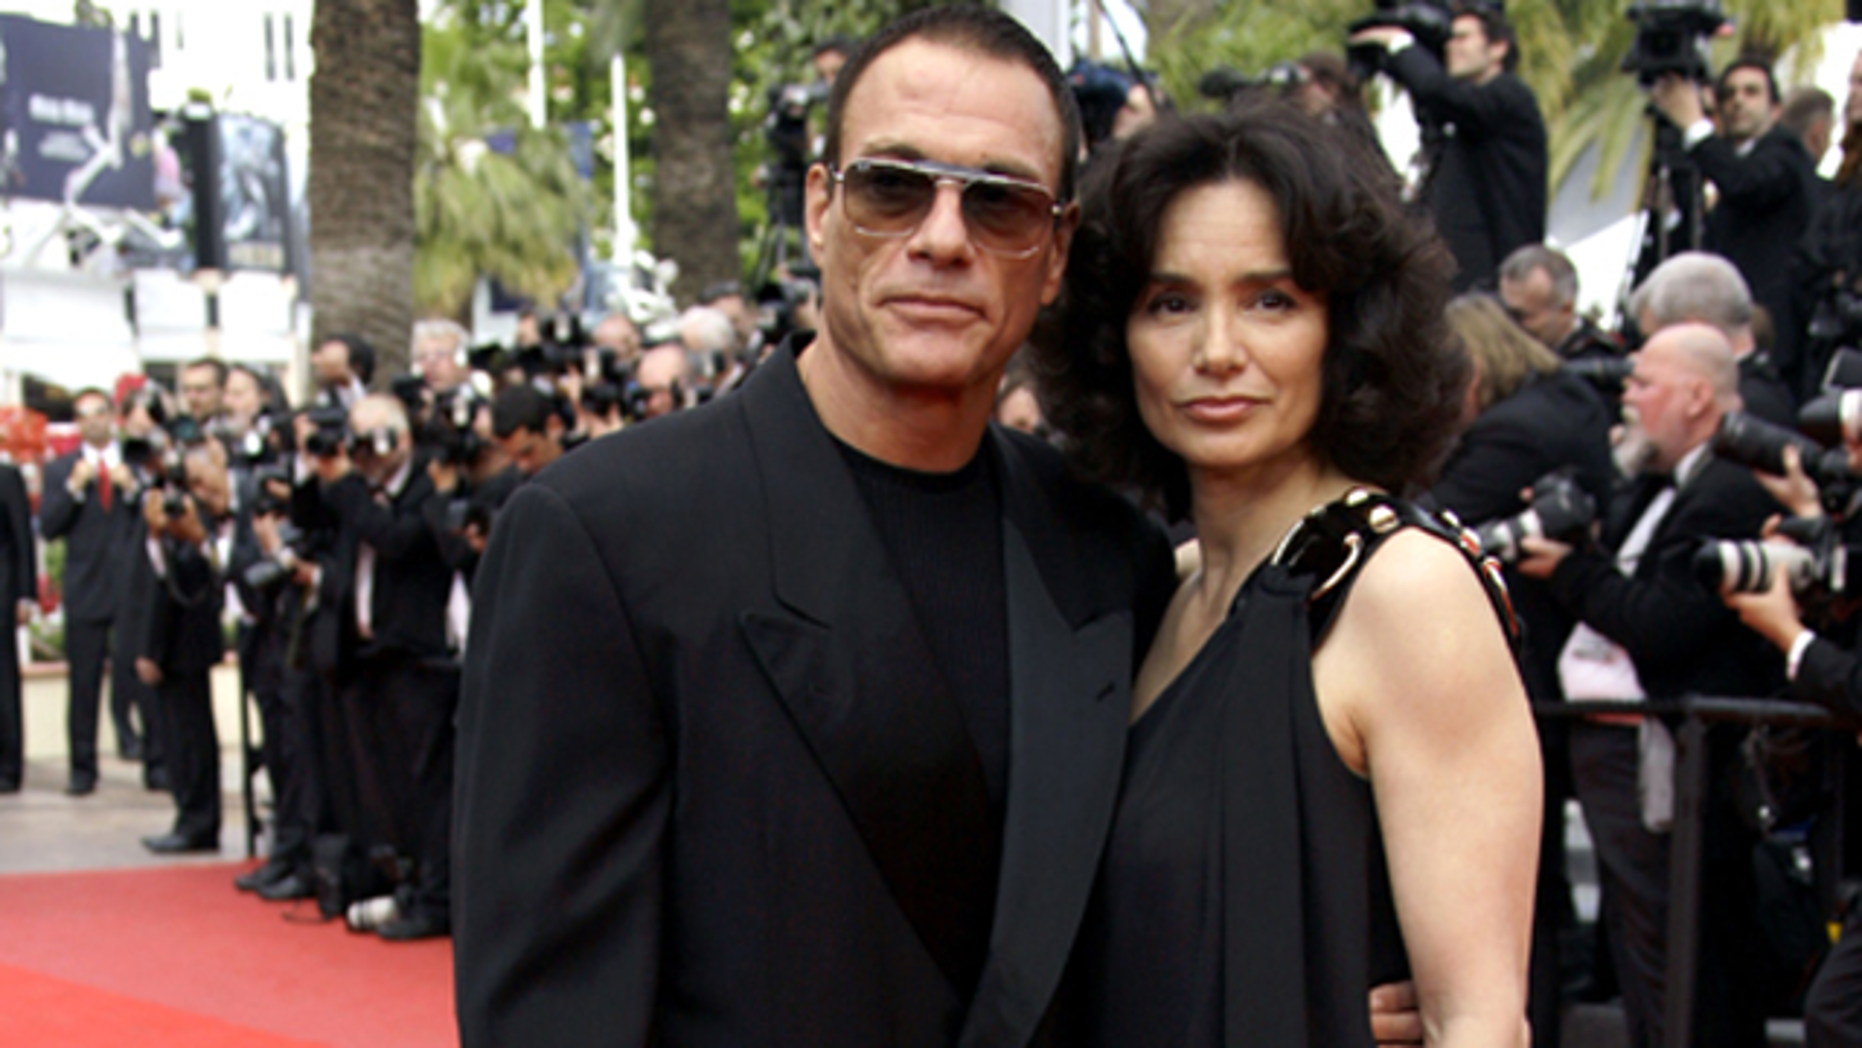 Claude van Damme and Gladys Portugues at Cannes in 2009. (Reuters)